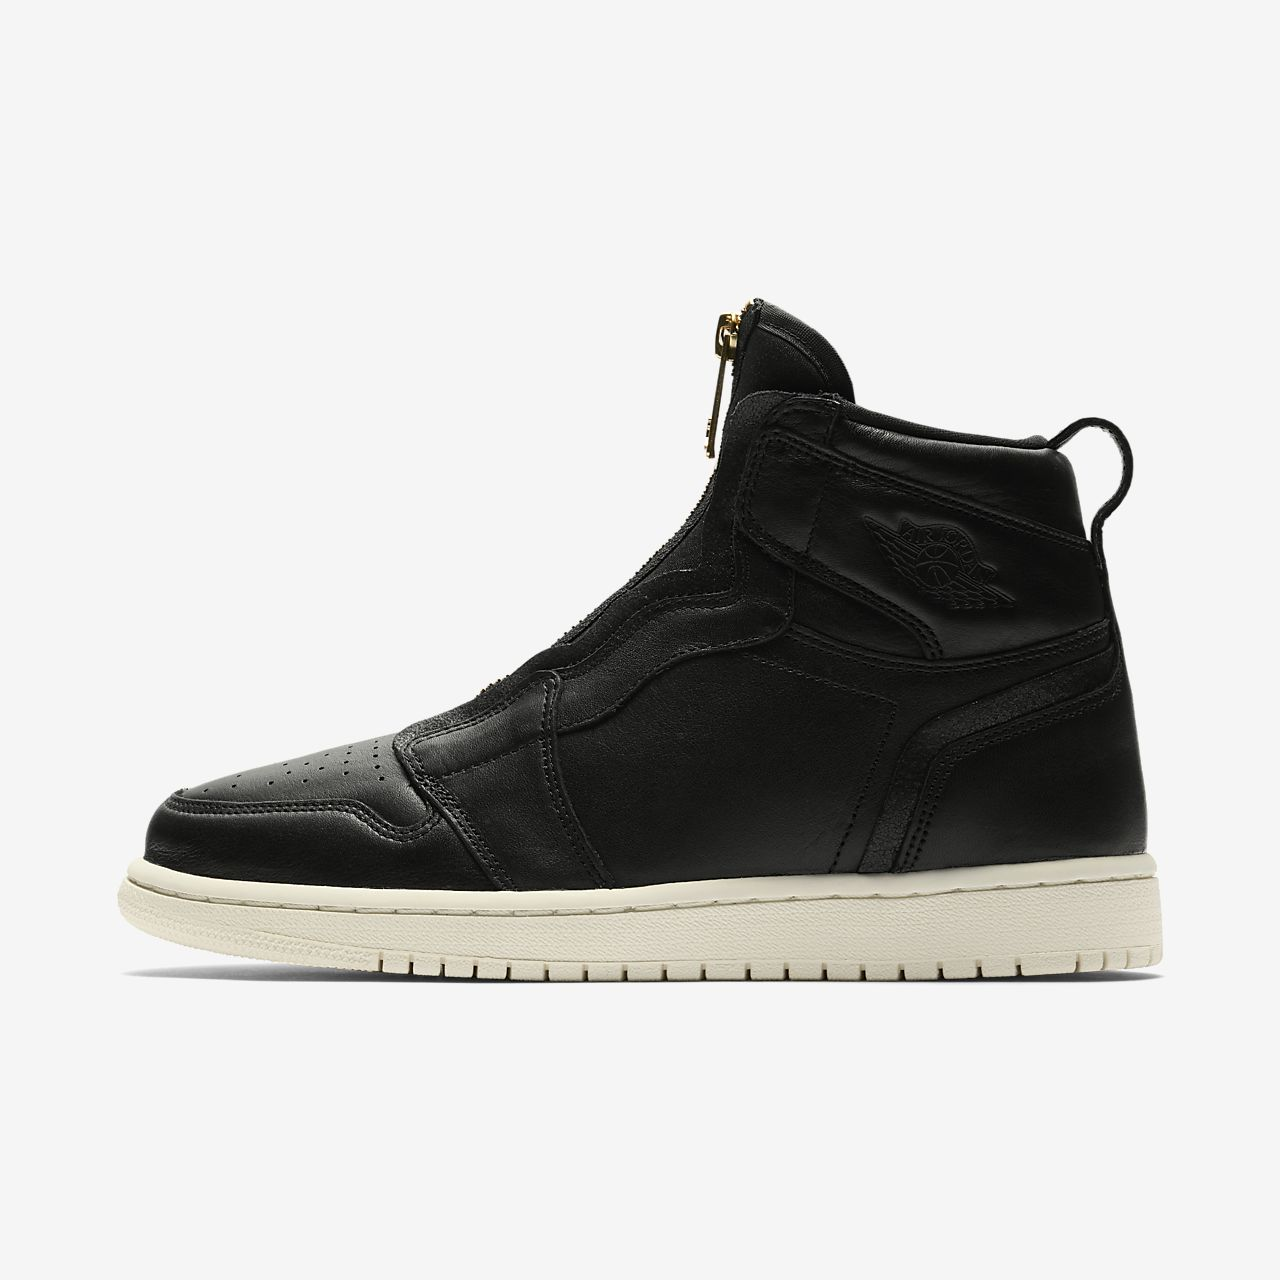 wholesale dealer edf2f 02357 Air Jordan 1 High Zip